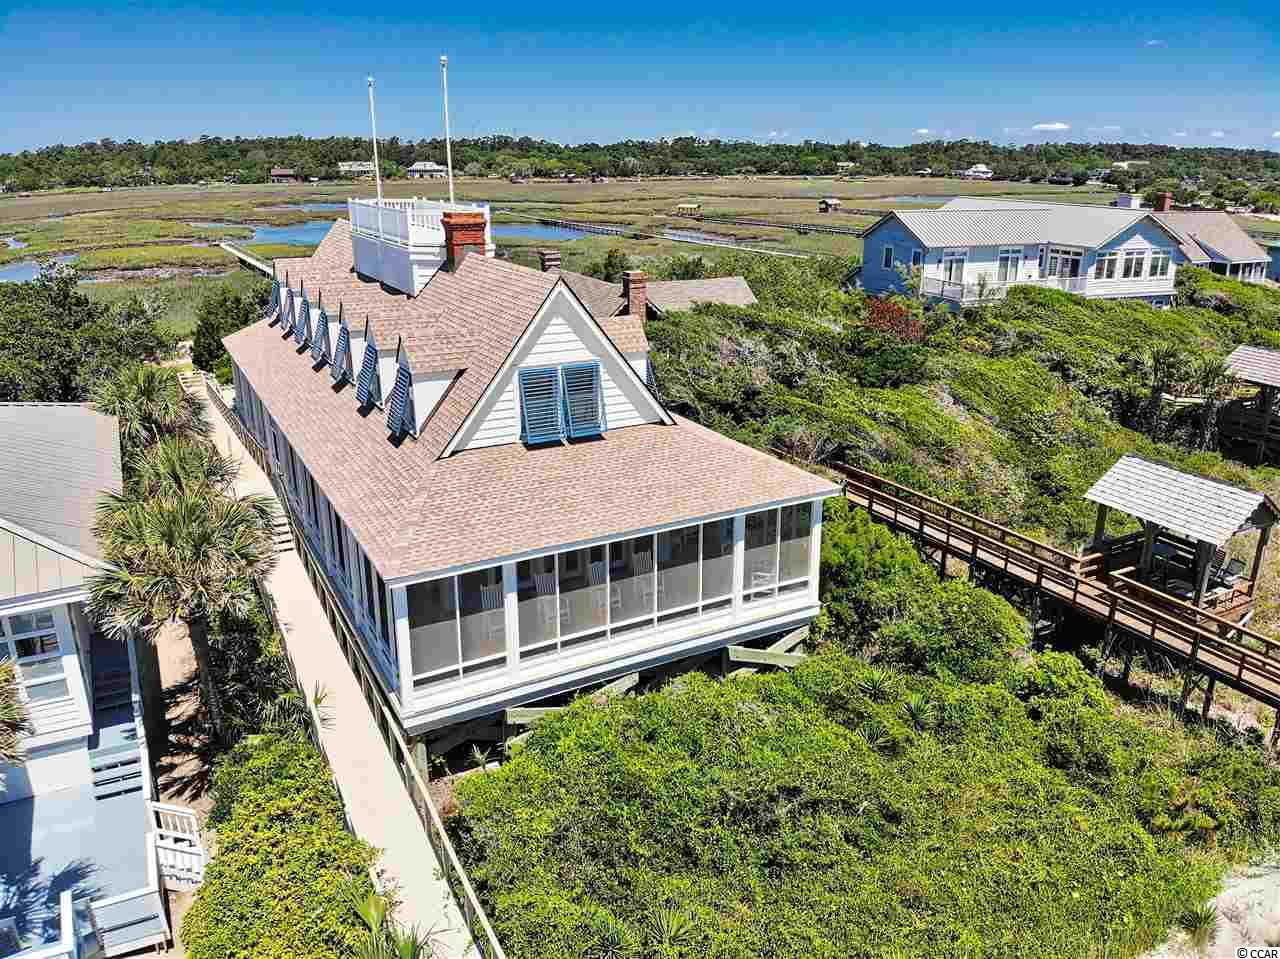 Get swept away by, Windswept. This Pawleys Island charmer is known for its exquisite craftsmanship as well as sunrises over the Atlantic Ocean and breath taking sunsets over the creek. Located right in the heart of the historic district on Pawleys Island, this home has so much to offer. From the rooftop 360 view of the island to the astounding detail in the woodwork, it's a MUST SEE! This home offers two stories with amazing spaces for you to enjoy both inside and out. With access to both the beach and the creek there is always something fun to do. Also located nearby are many quaint shops and restaurants that are exclusive to the Pawleys Island area. Whether taking in the sea breeze on the front porch or sitting creek side, this home will not disappoint. In addition, a brand new roof and hurricane shutters were just recently put on the home. Windswept is the perfect OCEANFRONT Pawleys Island home to make memories with friends and family that will last a lifetime. Oceanfront and Creek/Marsh Lot across the Street. Call today to set up a Private Tour.